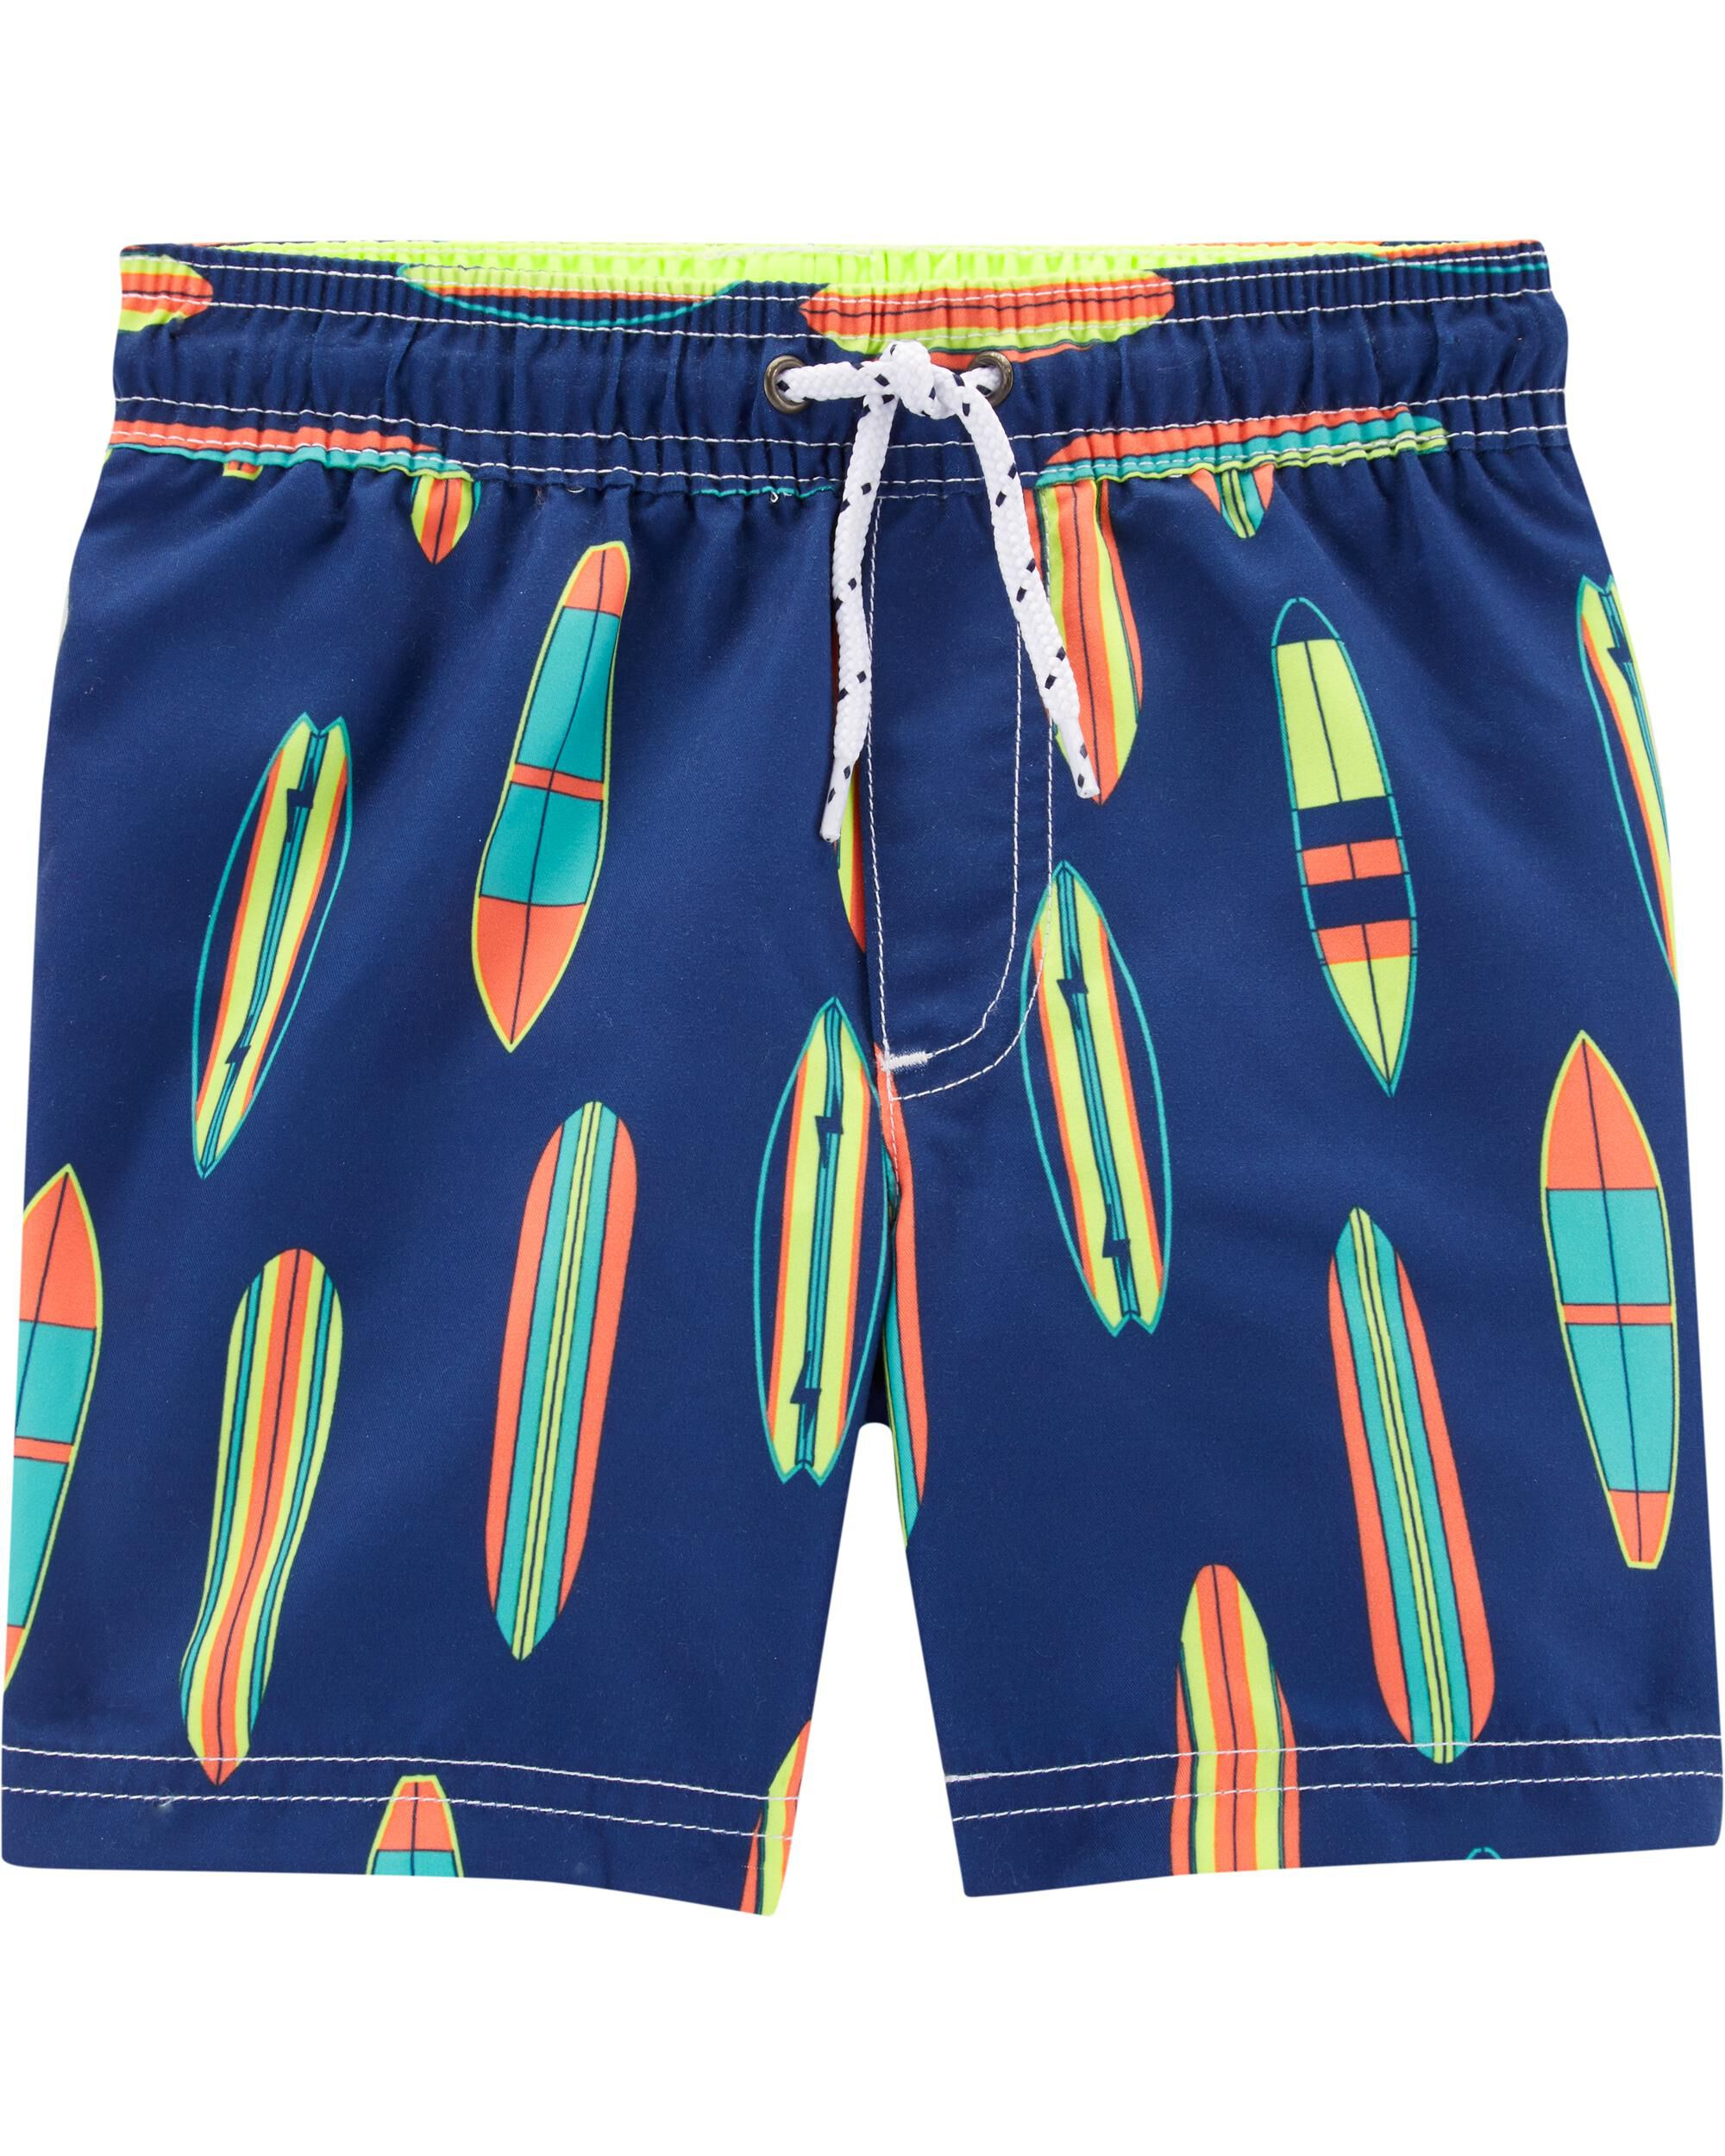 *Clearance*  Carter's Surfboard Swim Trunks